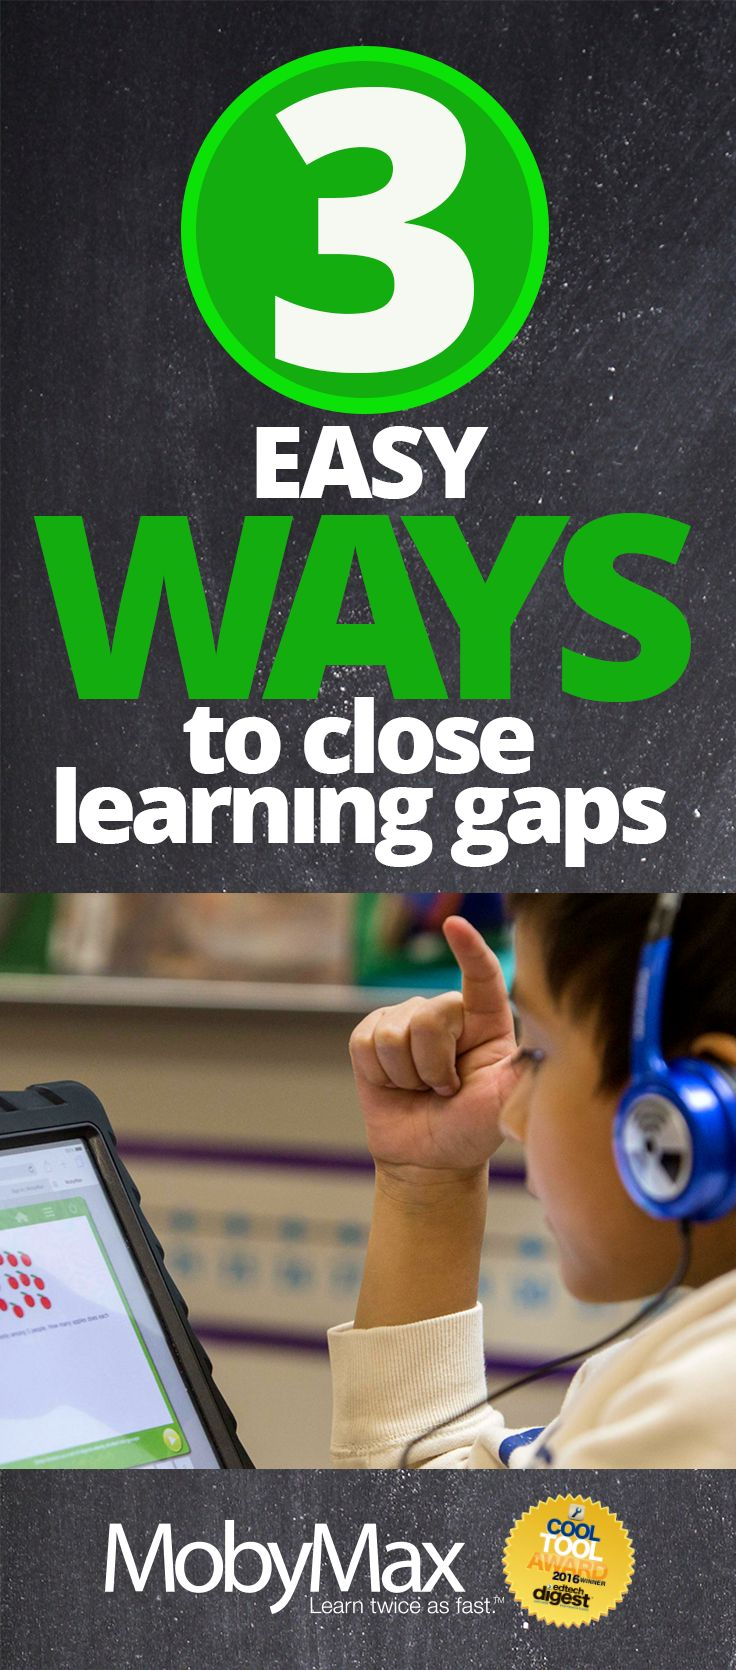 """The """"learning gap"""" may be one of the biggest hurdles you face when you first walk into your classroom. How do you effectively close the learning gap for each student while making sure the whole class continues to progress through the curriculum? MobyMax is a FUN and FREE tool that finds and fixes learning gaps with the power of personalized learning in all K-8 subjects including math, reading, language, writing, science, social studies, and more. MobyMax is specifically designed for…"""